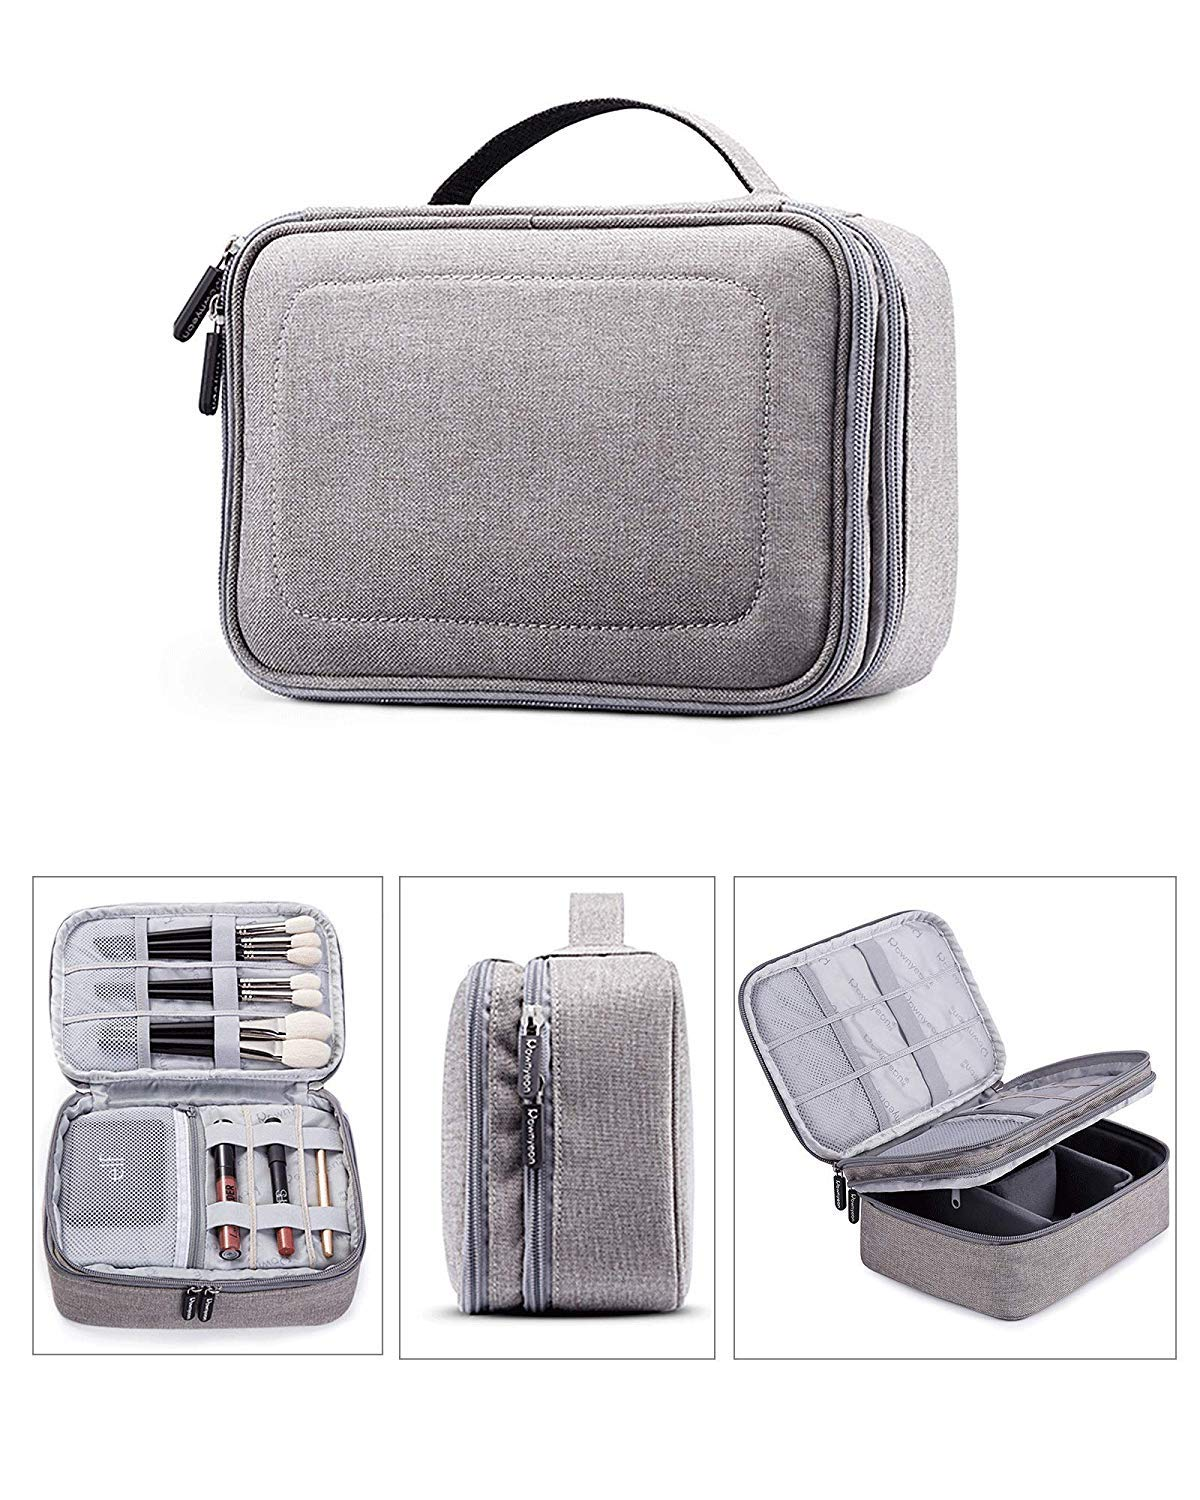 Rownyeon 3 Layers Waterproof Makeup Bag Cosmetic Bags Travel Organizer Mini Train Case with Adjustable Dividers for Cosmetics Makeup Brushes Toiletry Jewelry Digital Accessories (Grey-1 Small)